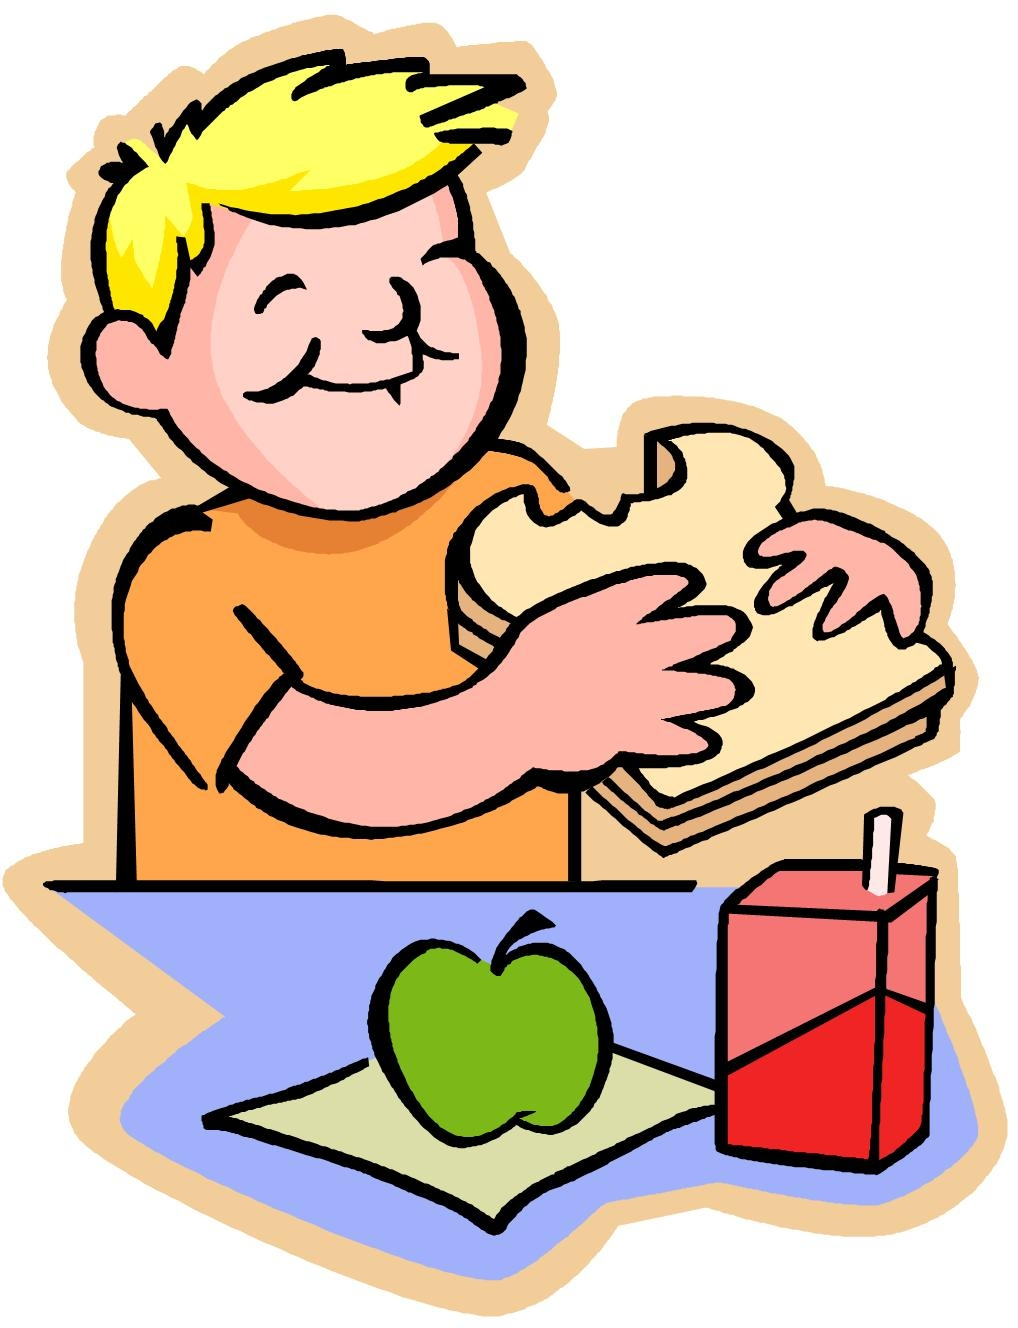 eating clipart at getdrawings com free for personal use eating rh getdrawings com eating clipart gif eating clipart free